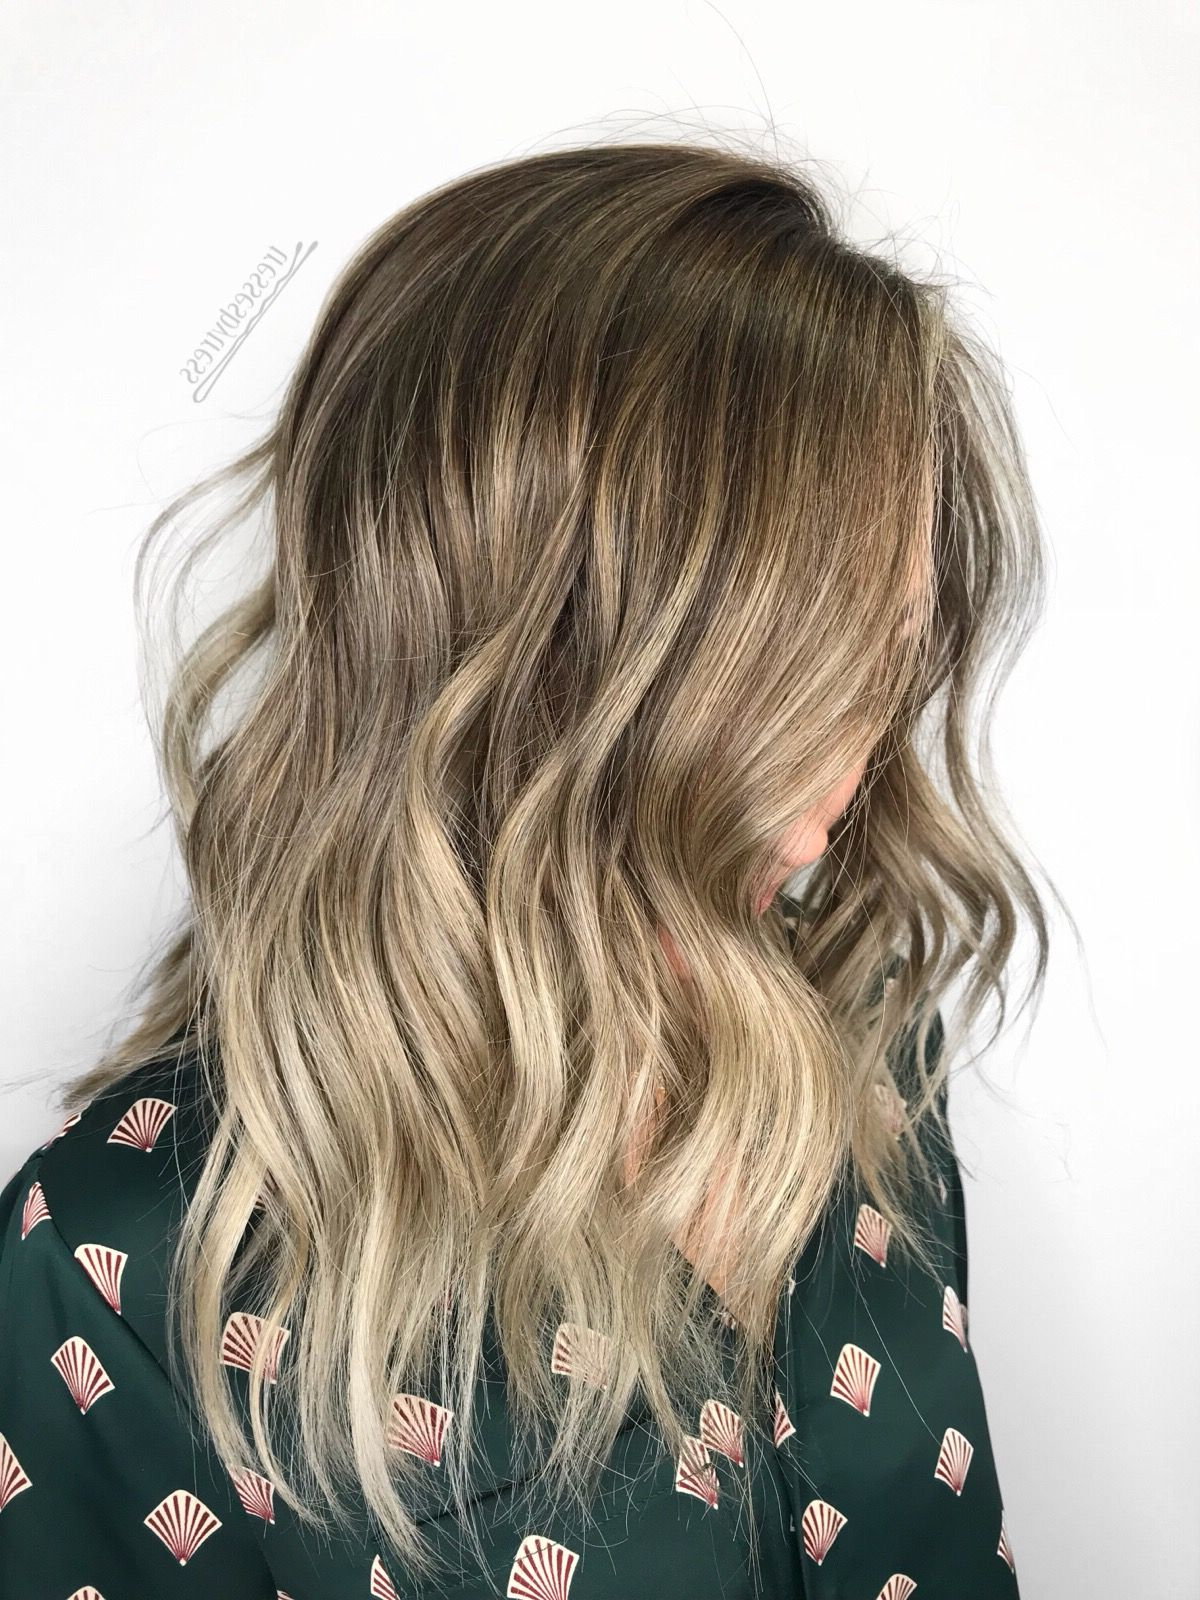 Beachy Beige Blonde Balayage Ombré Lob   Ombre Hair Blonde Inside Beachy Waves Hairstyles With Balayage Ombre (View 4 of 20)